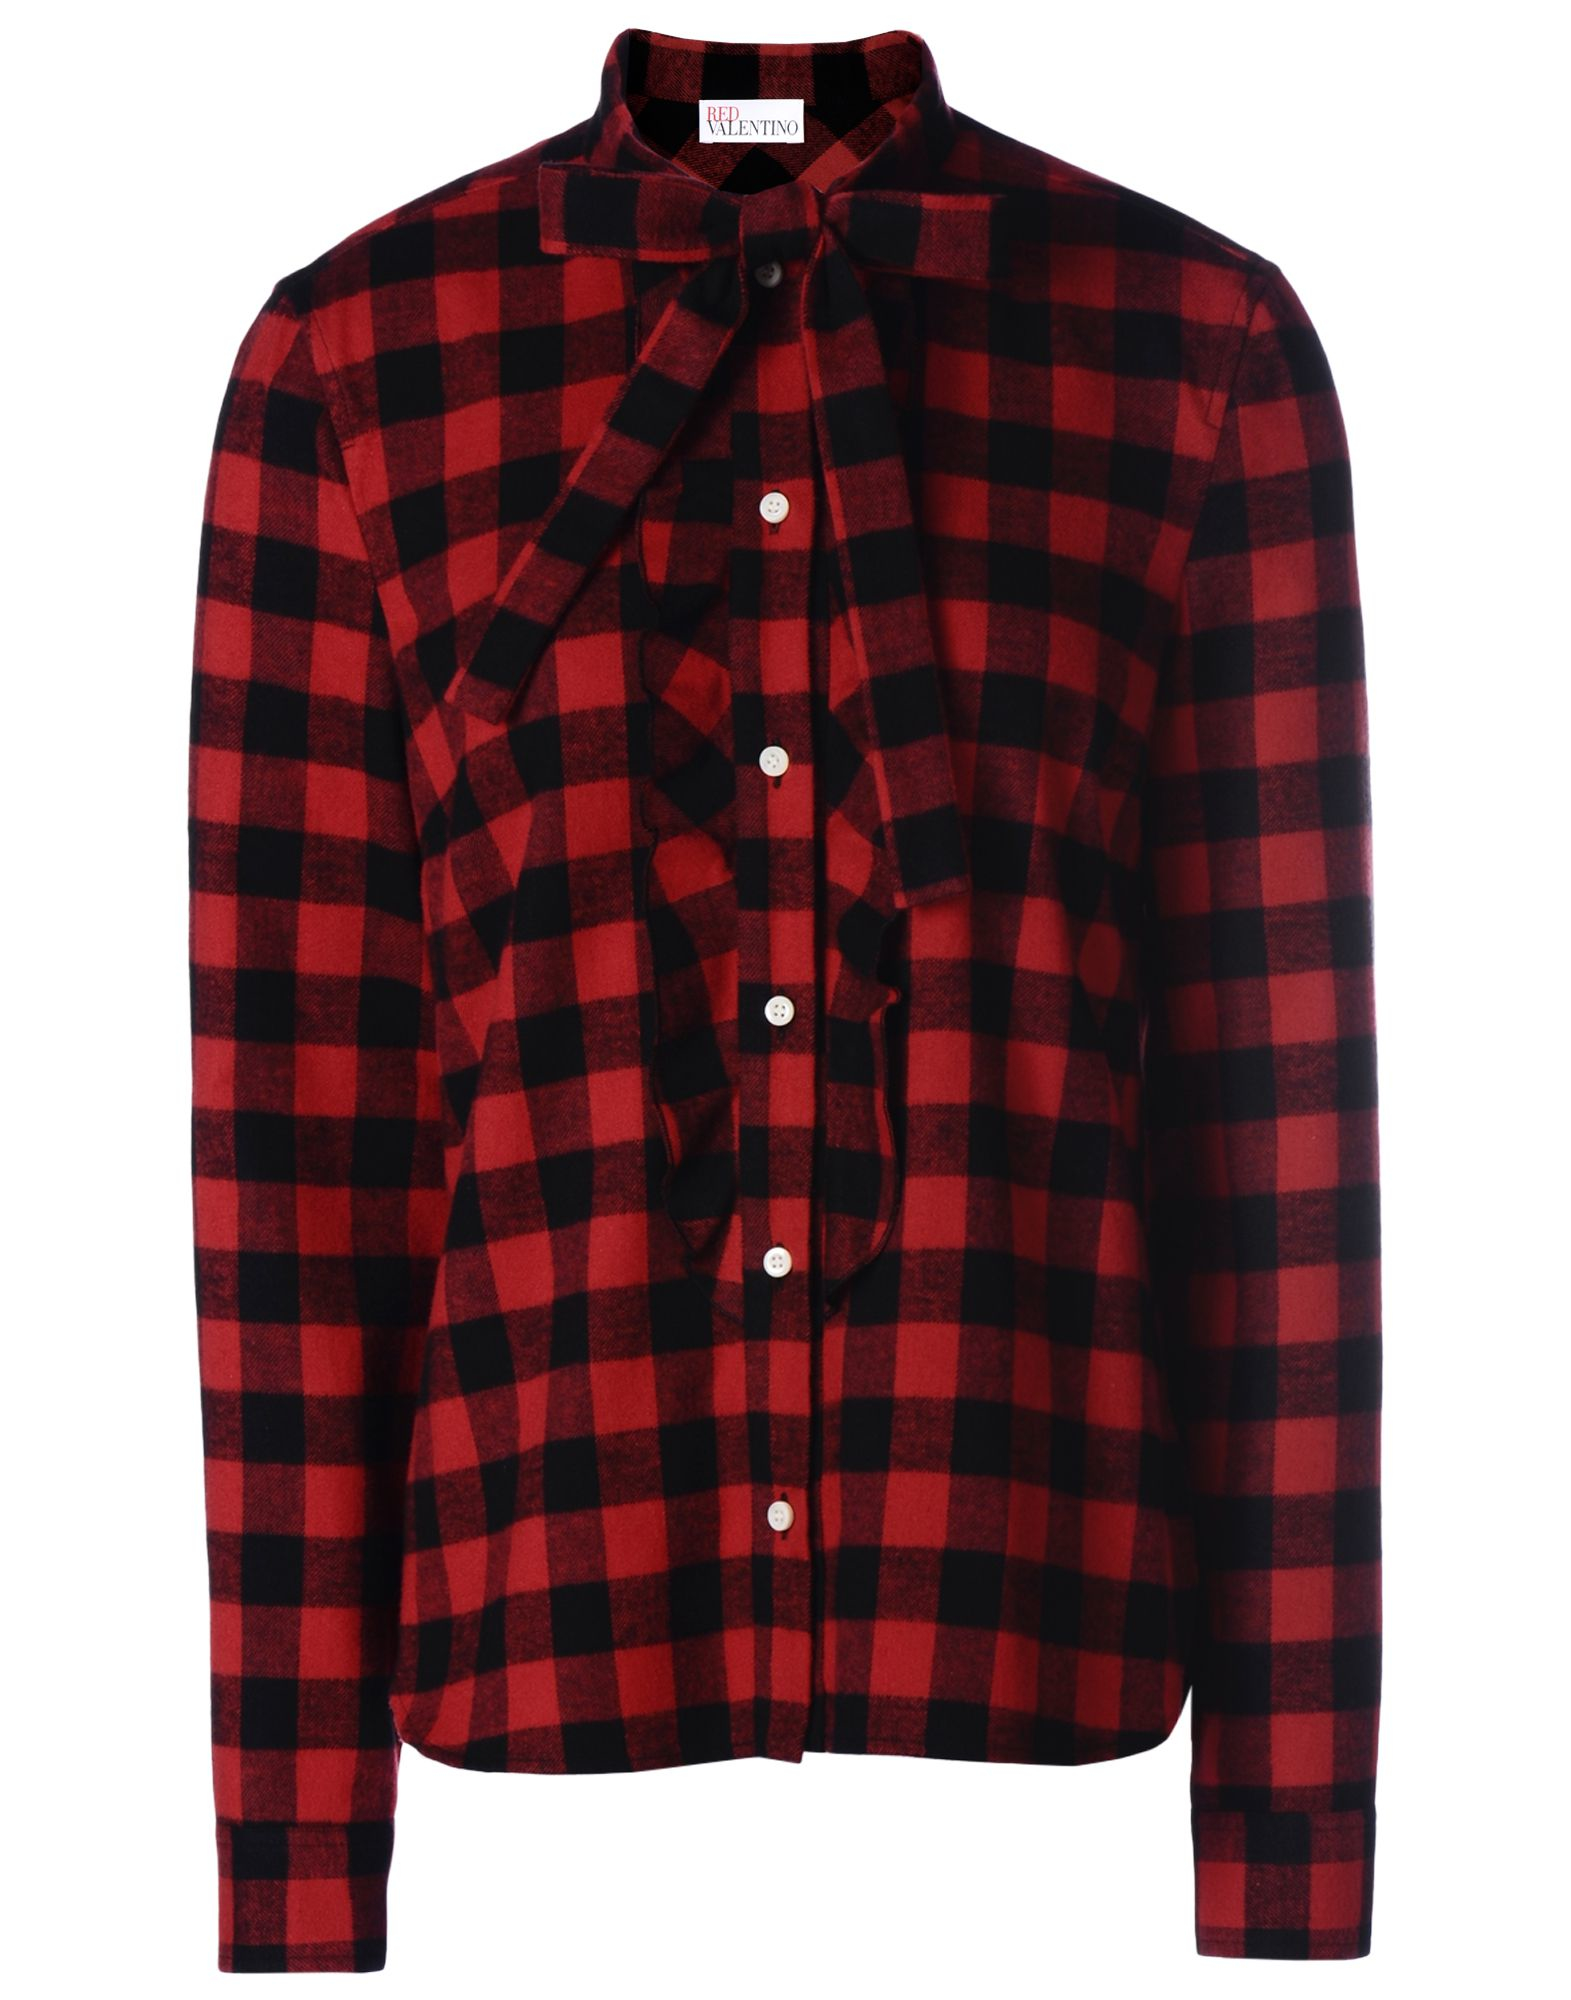 Find the best Scotch Plaid Flannel Shirt, Traditional Fit at learn-islam.gq Our high quality Men's Shirts are thoughtfully designed and built to last season after season.